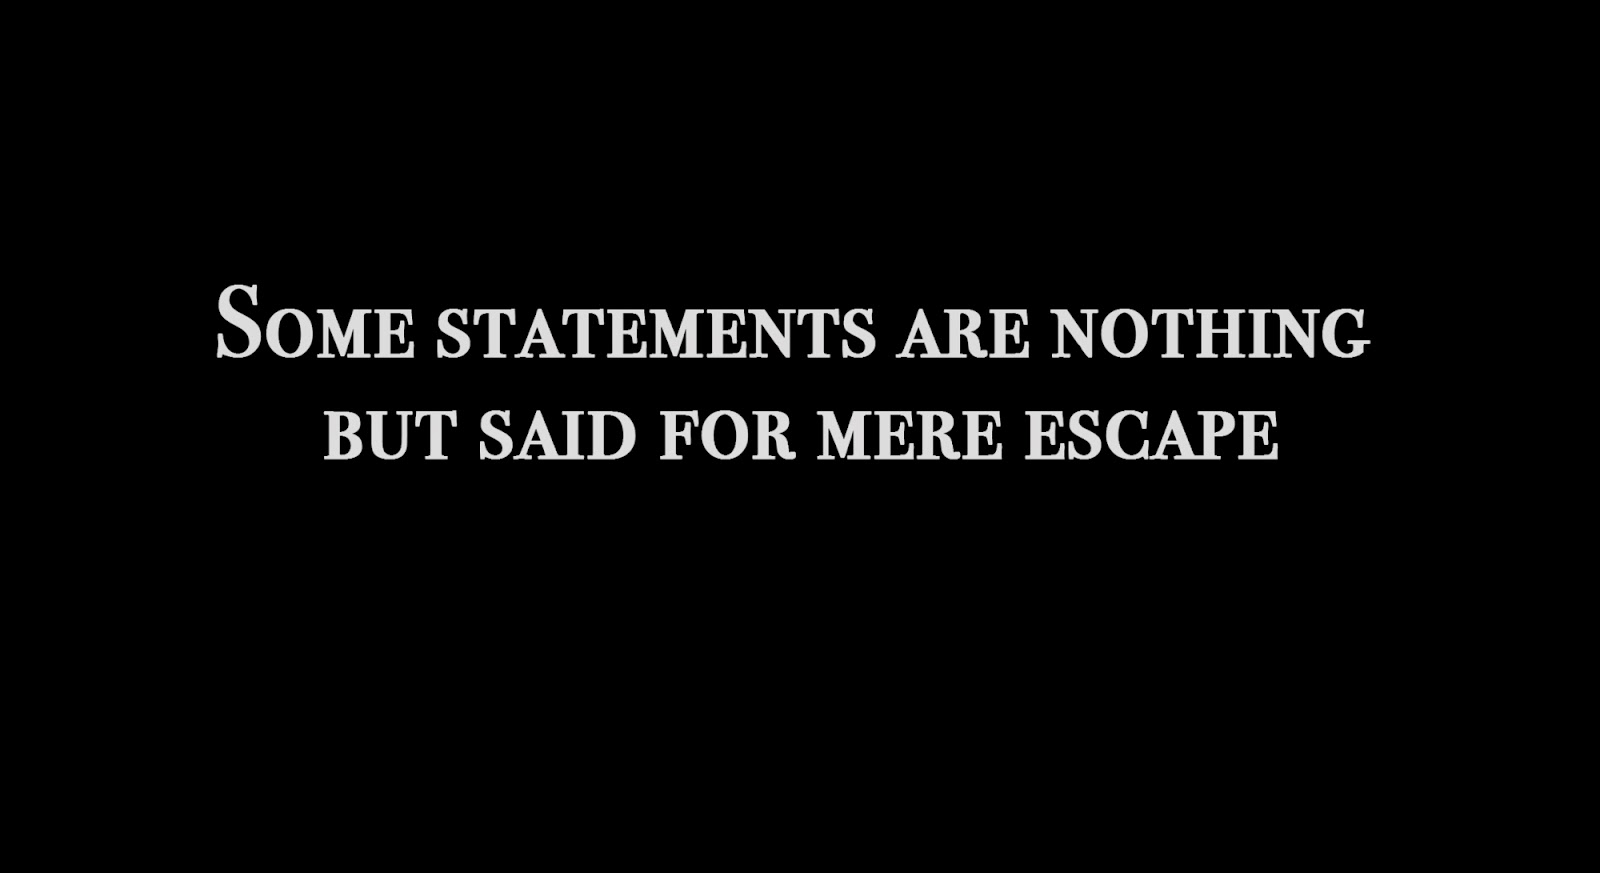 Some statements are nothing but said for mere escape